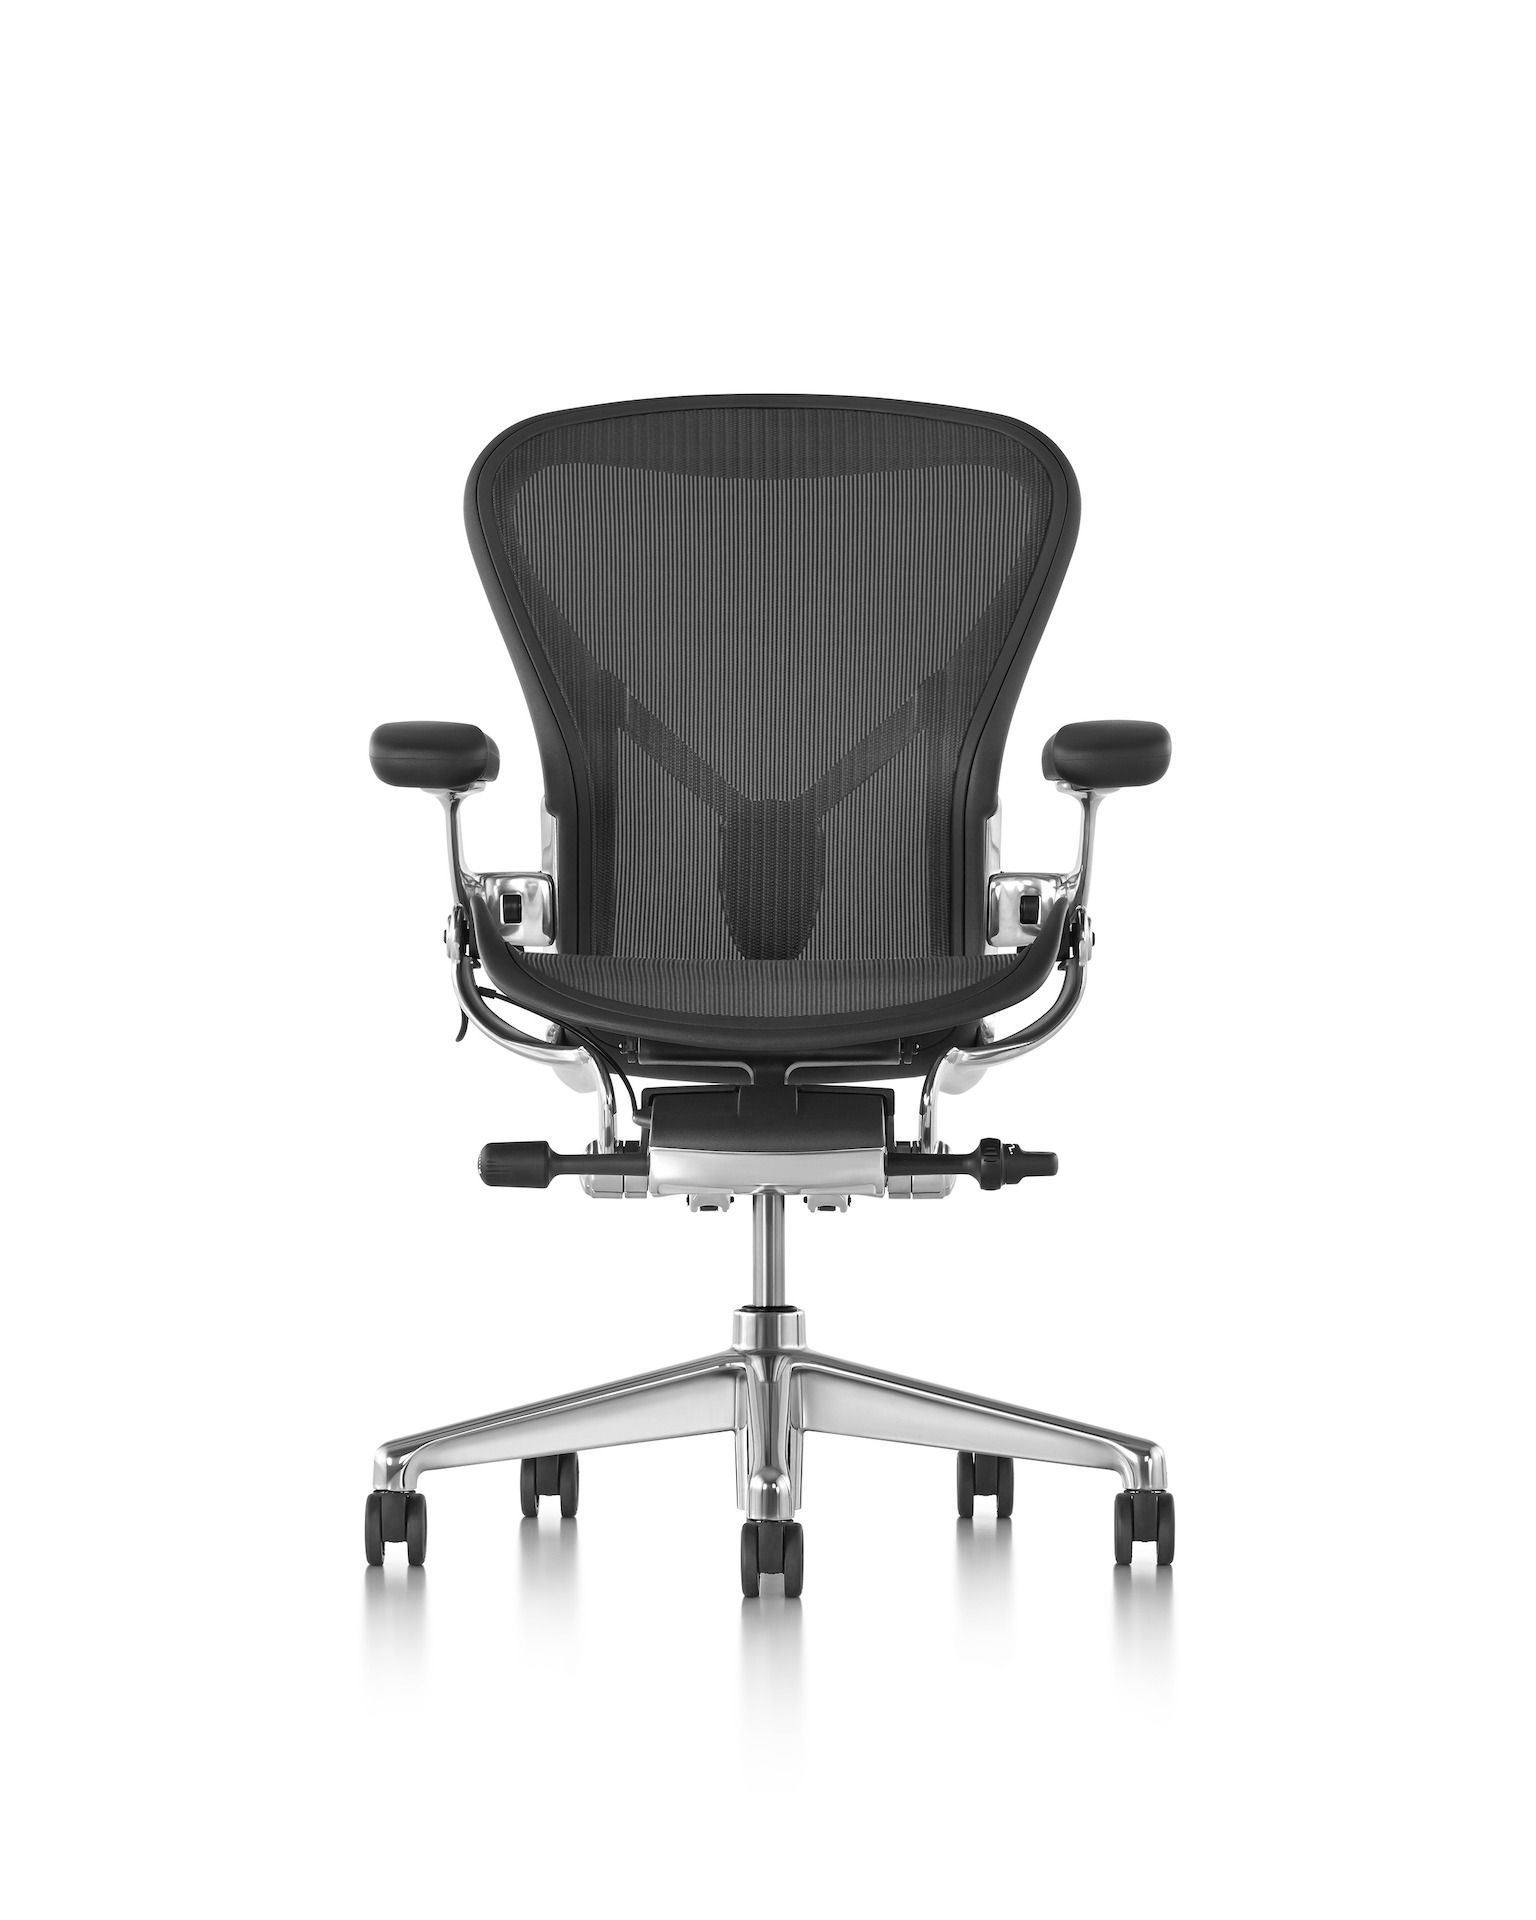 chairs image discontinued chair aeron classic herman miller task